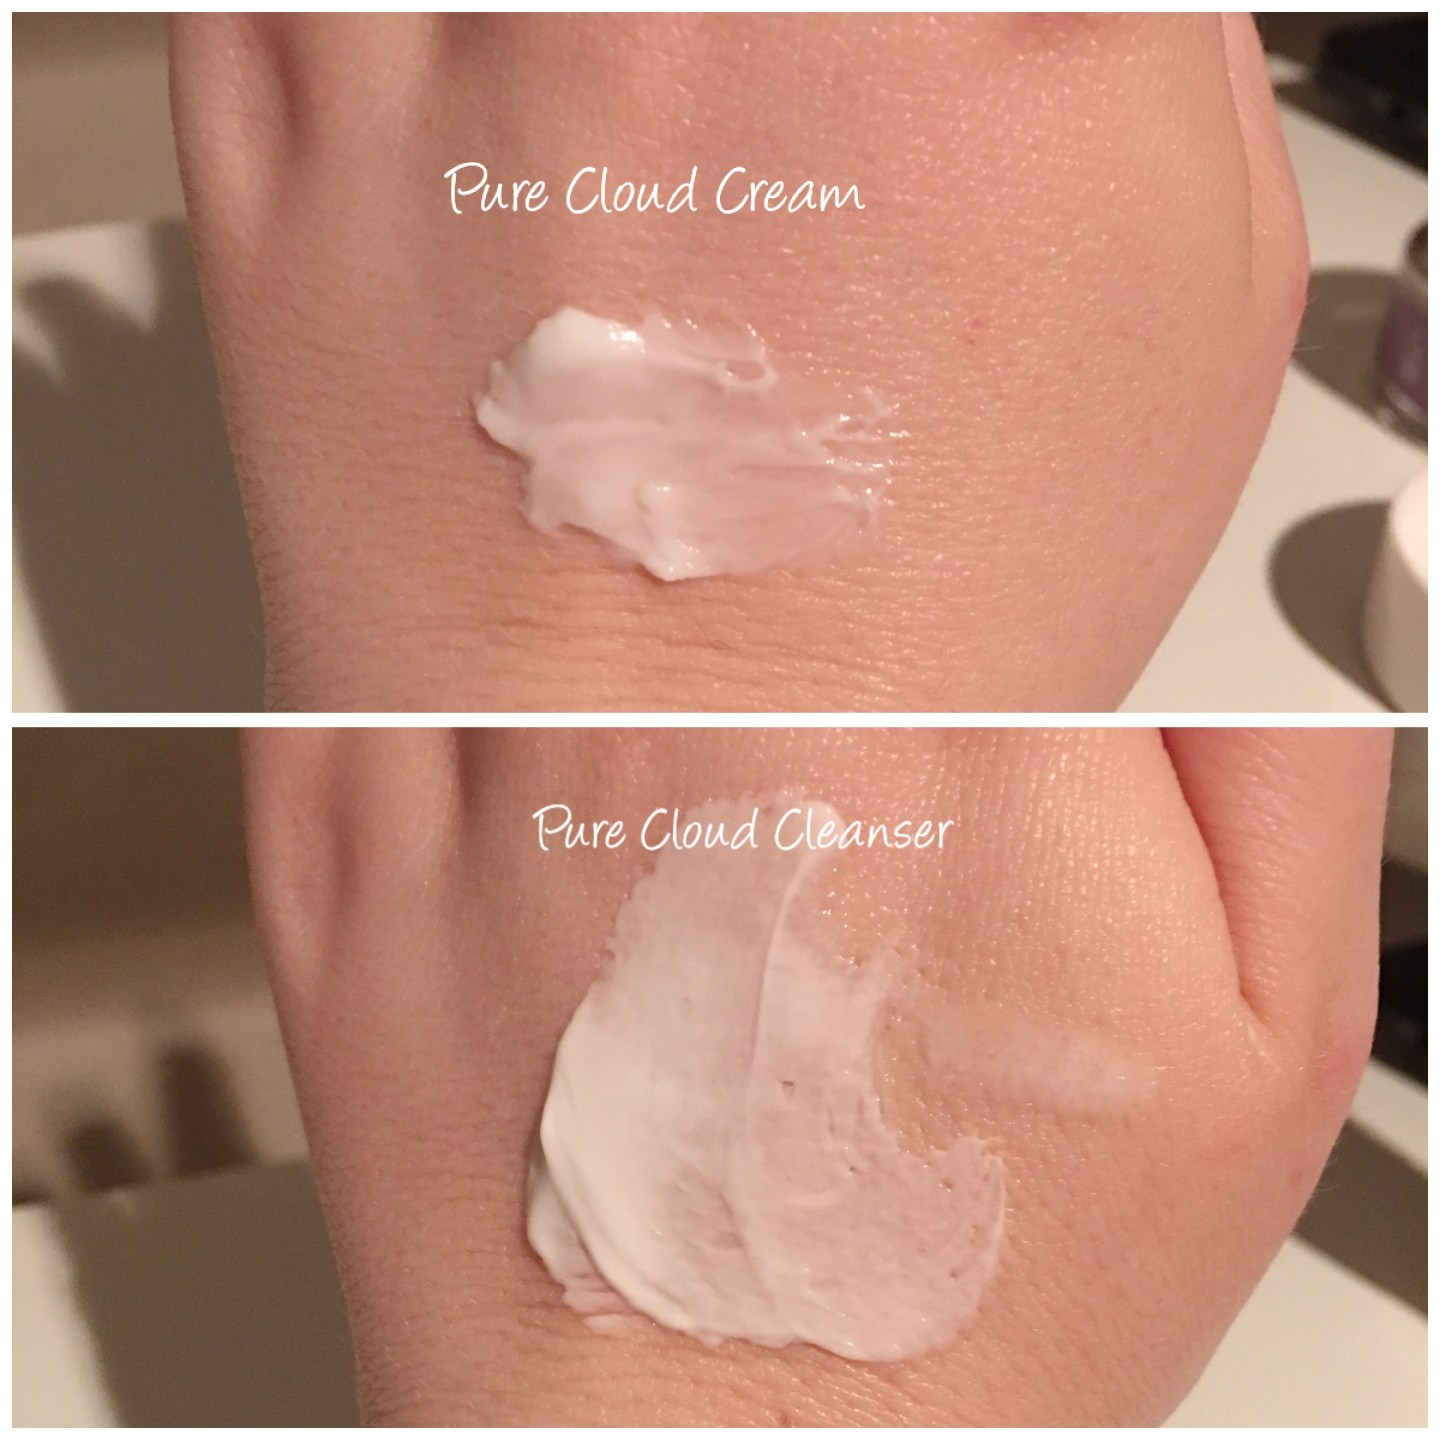 Skyn Iceland Pure Cloud Cleanser and Pure Cloud Cream